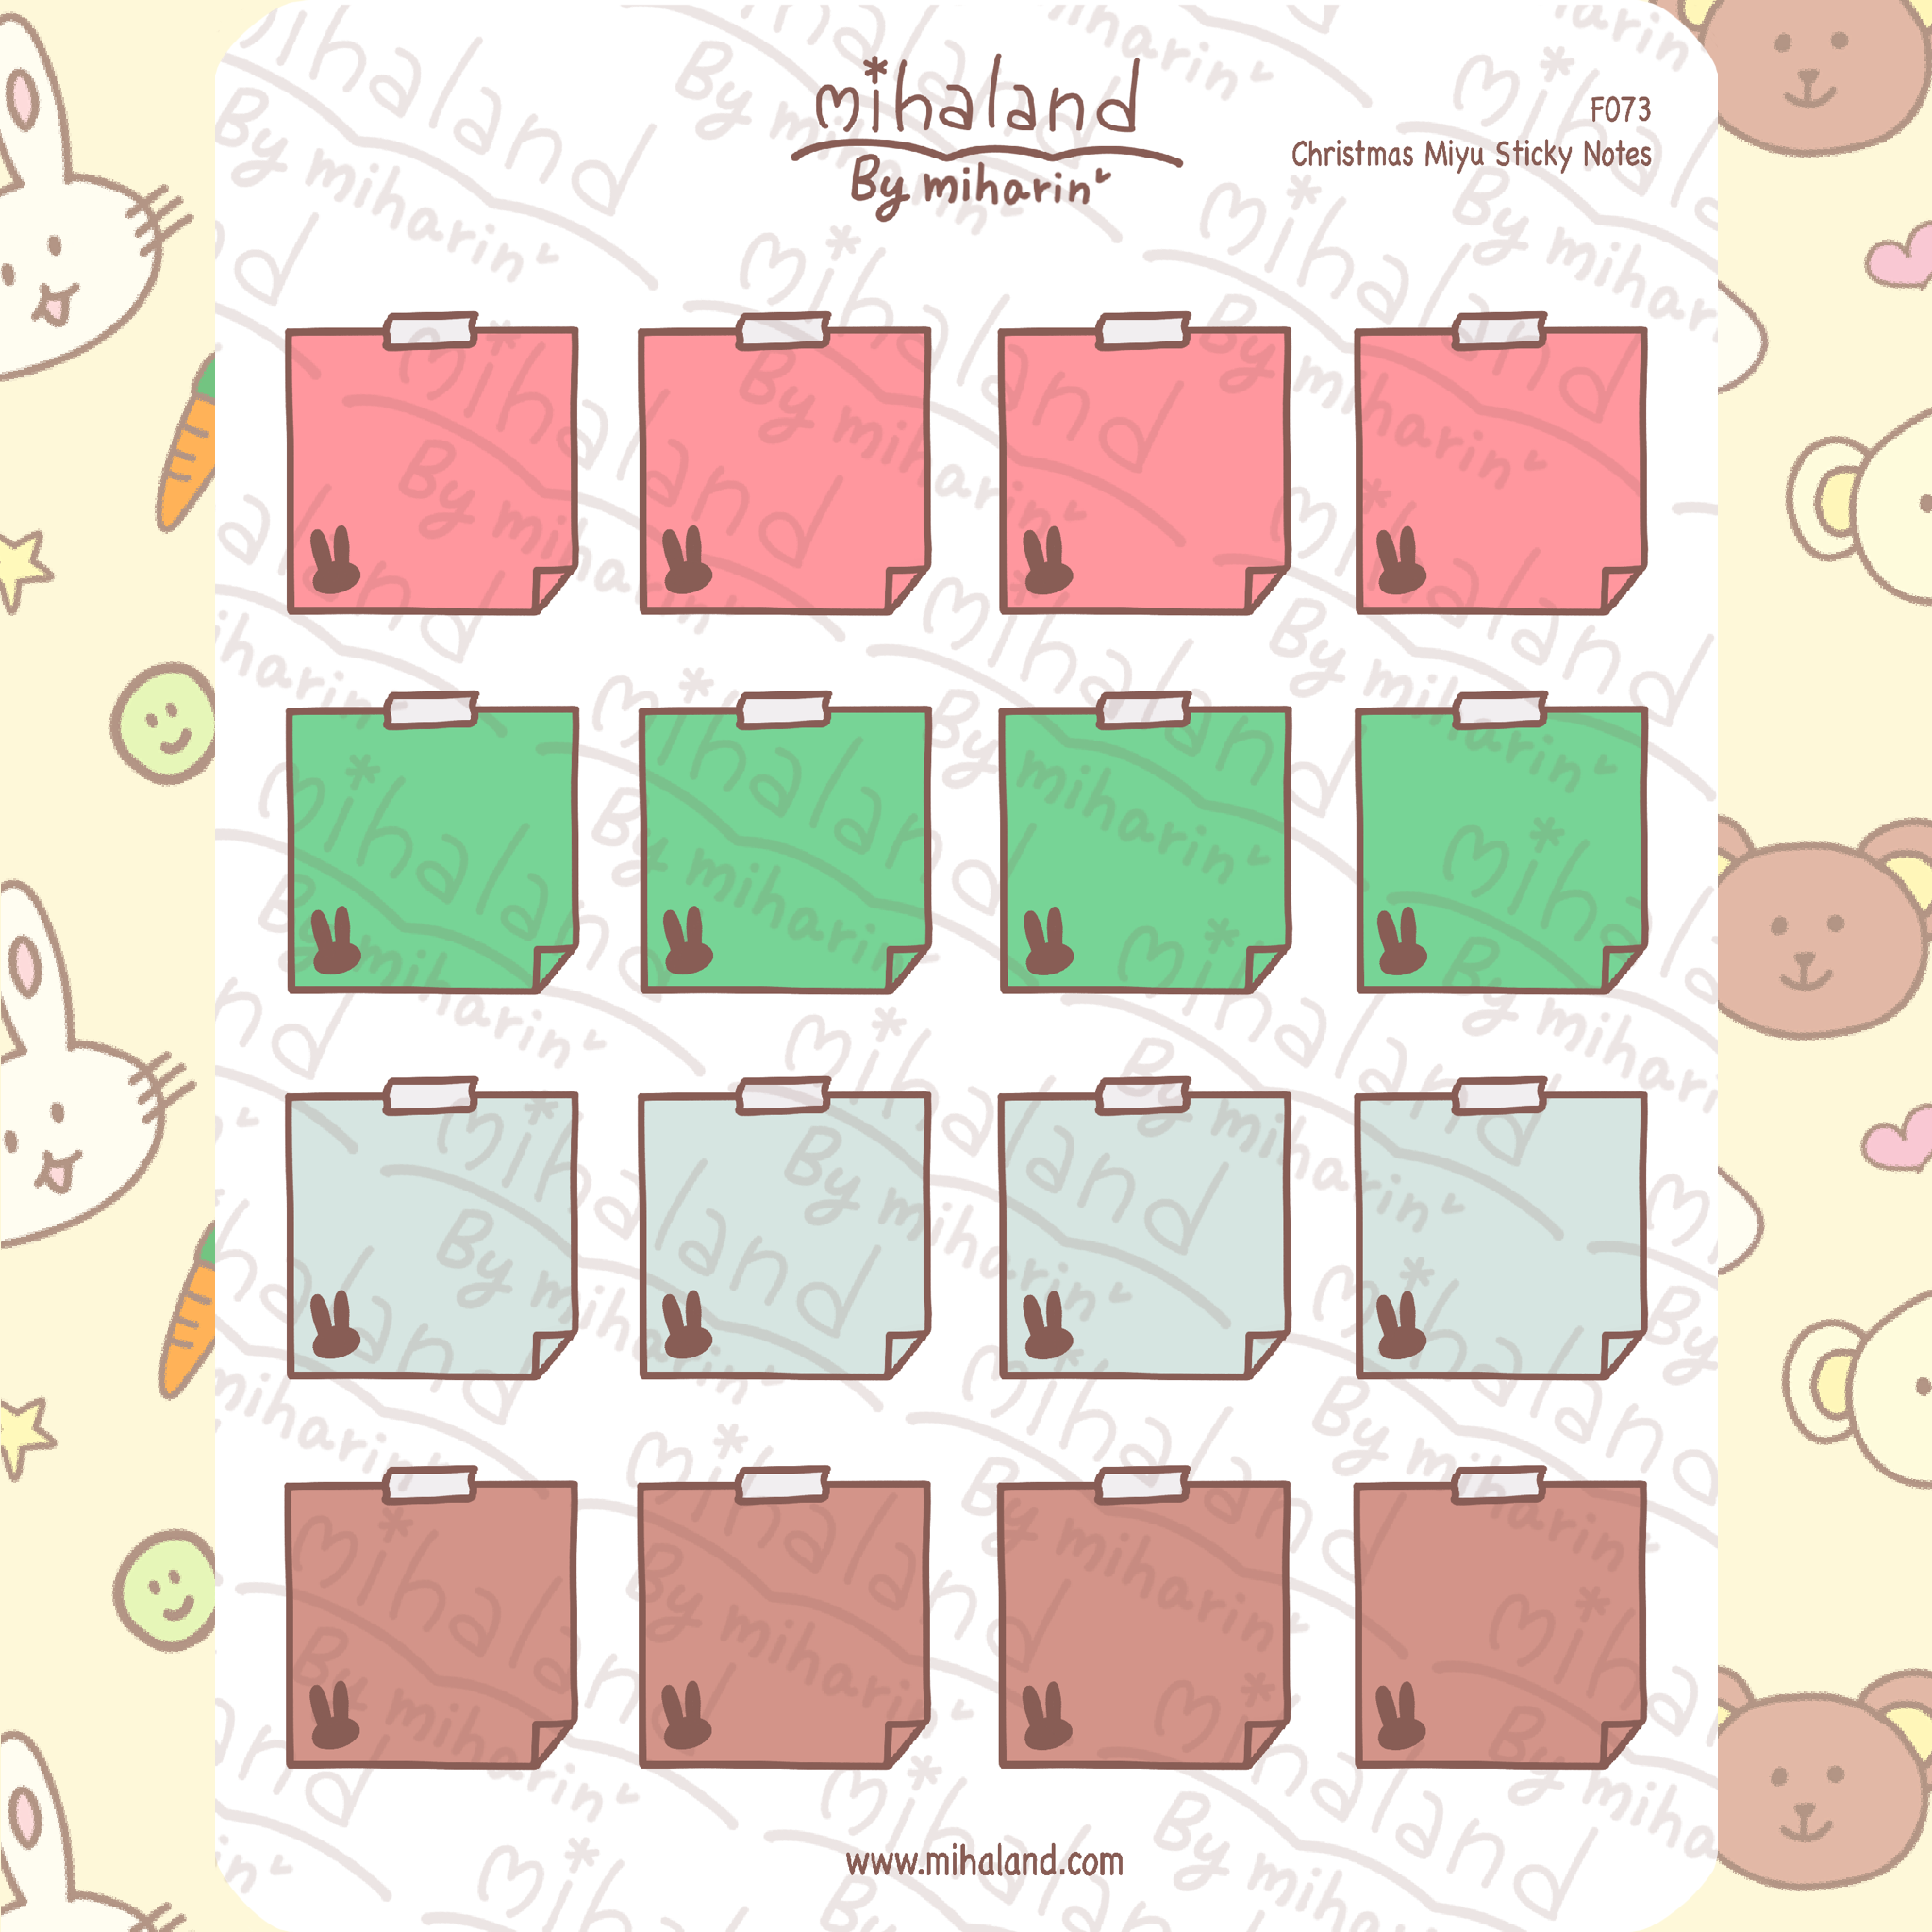 Christmas Miyu Sticky Notes Planner Stickers (F073)